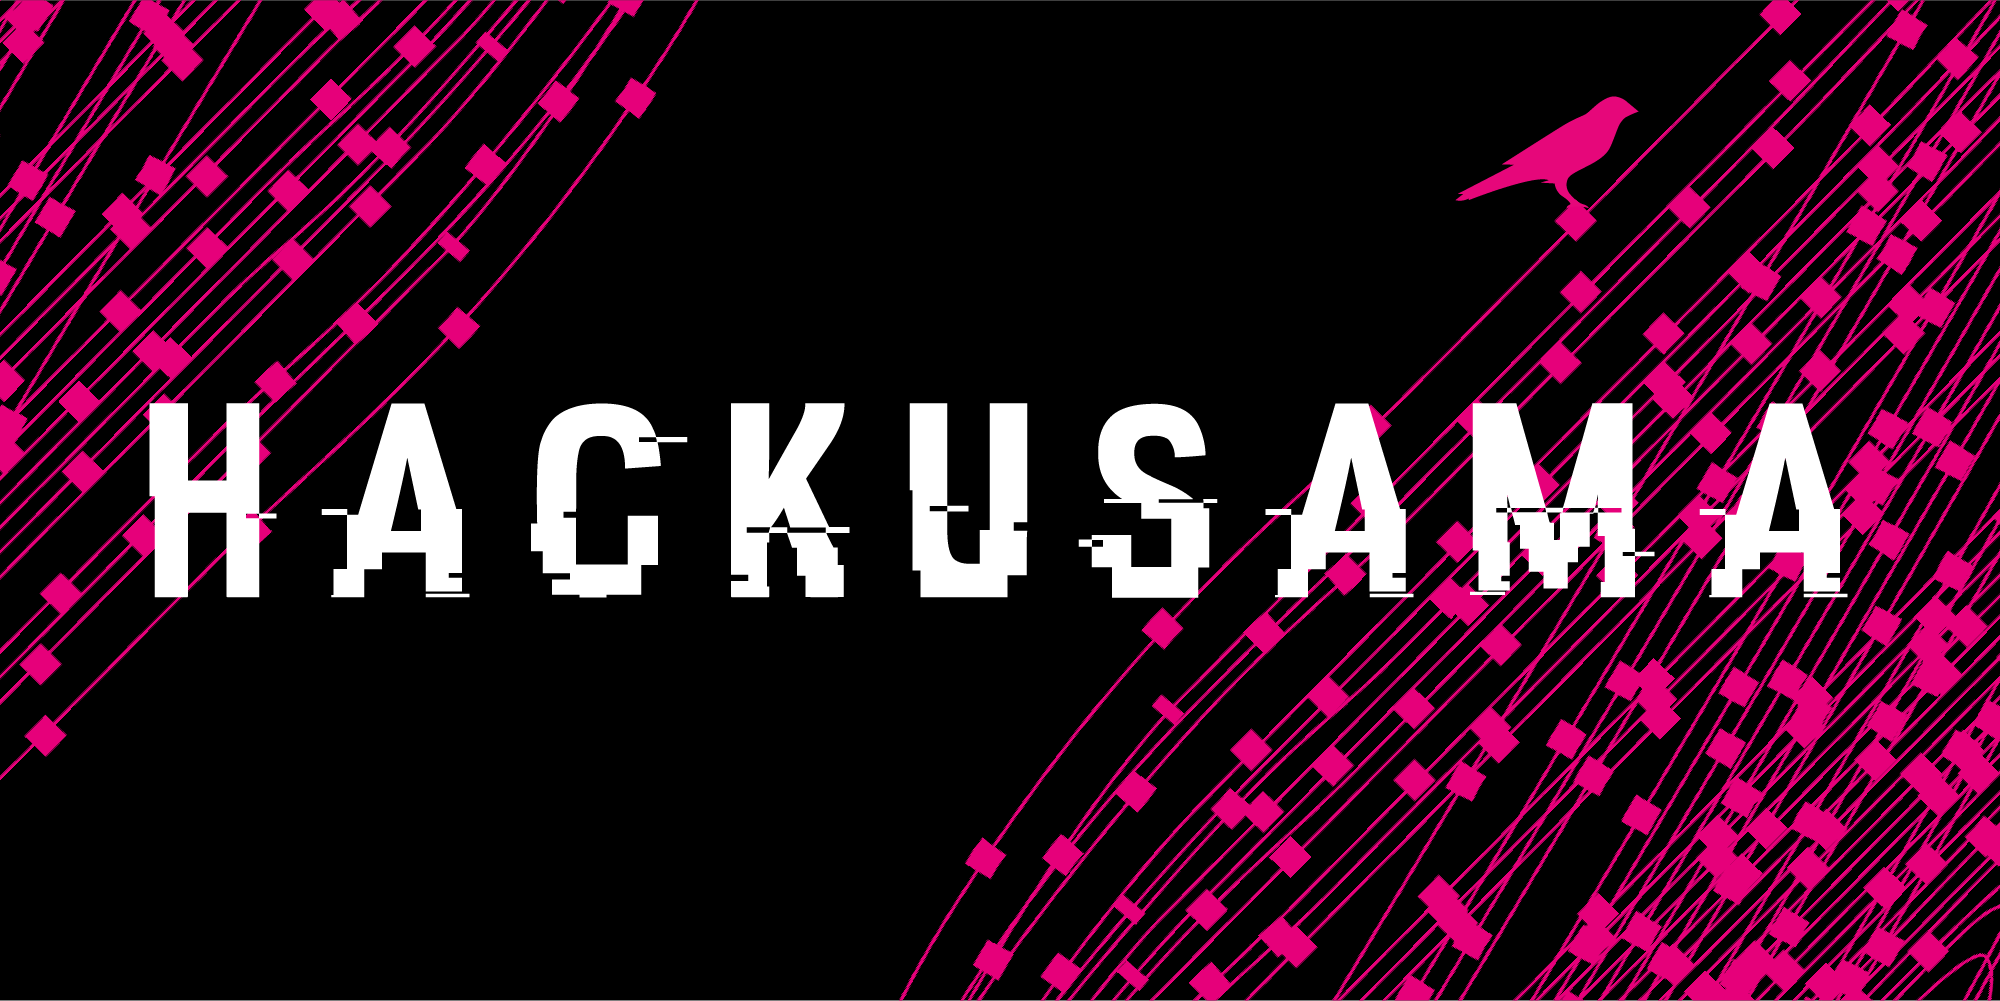 Join Hackusama - Hack on Polkadot's Wild Cousin!